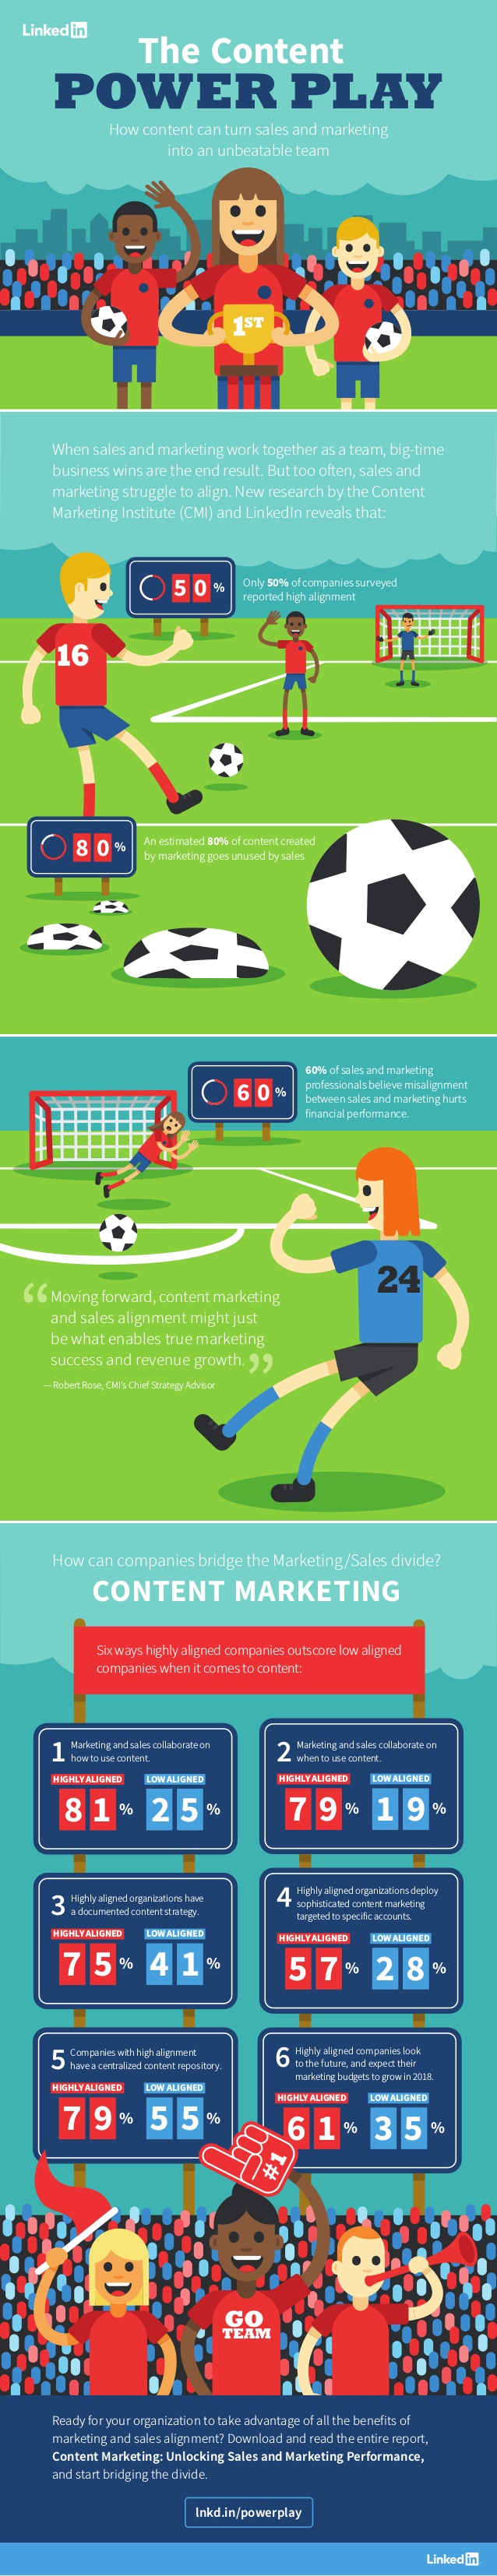 Infographic looking at how content approaches can help better align internal teams